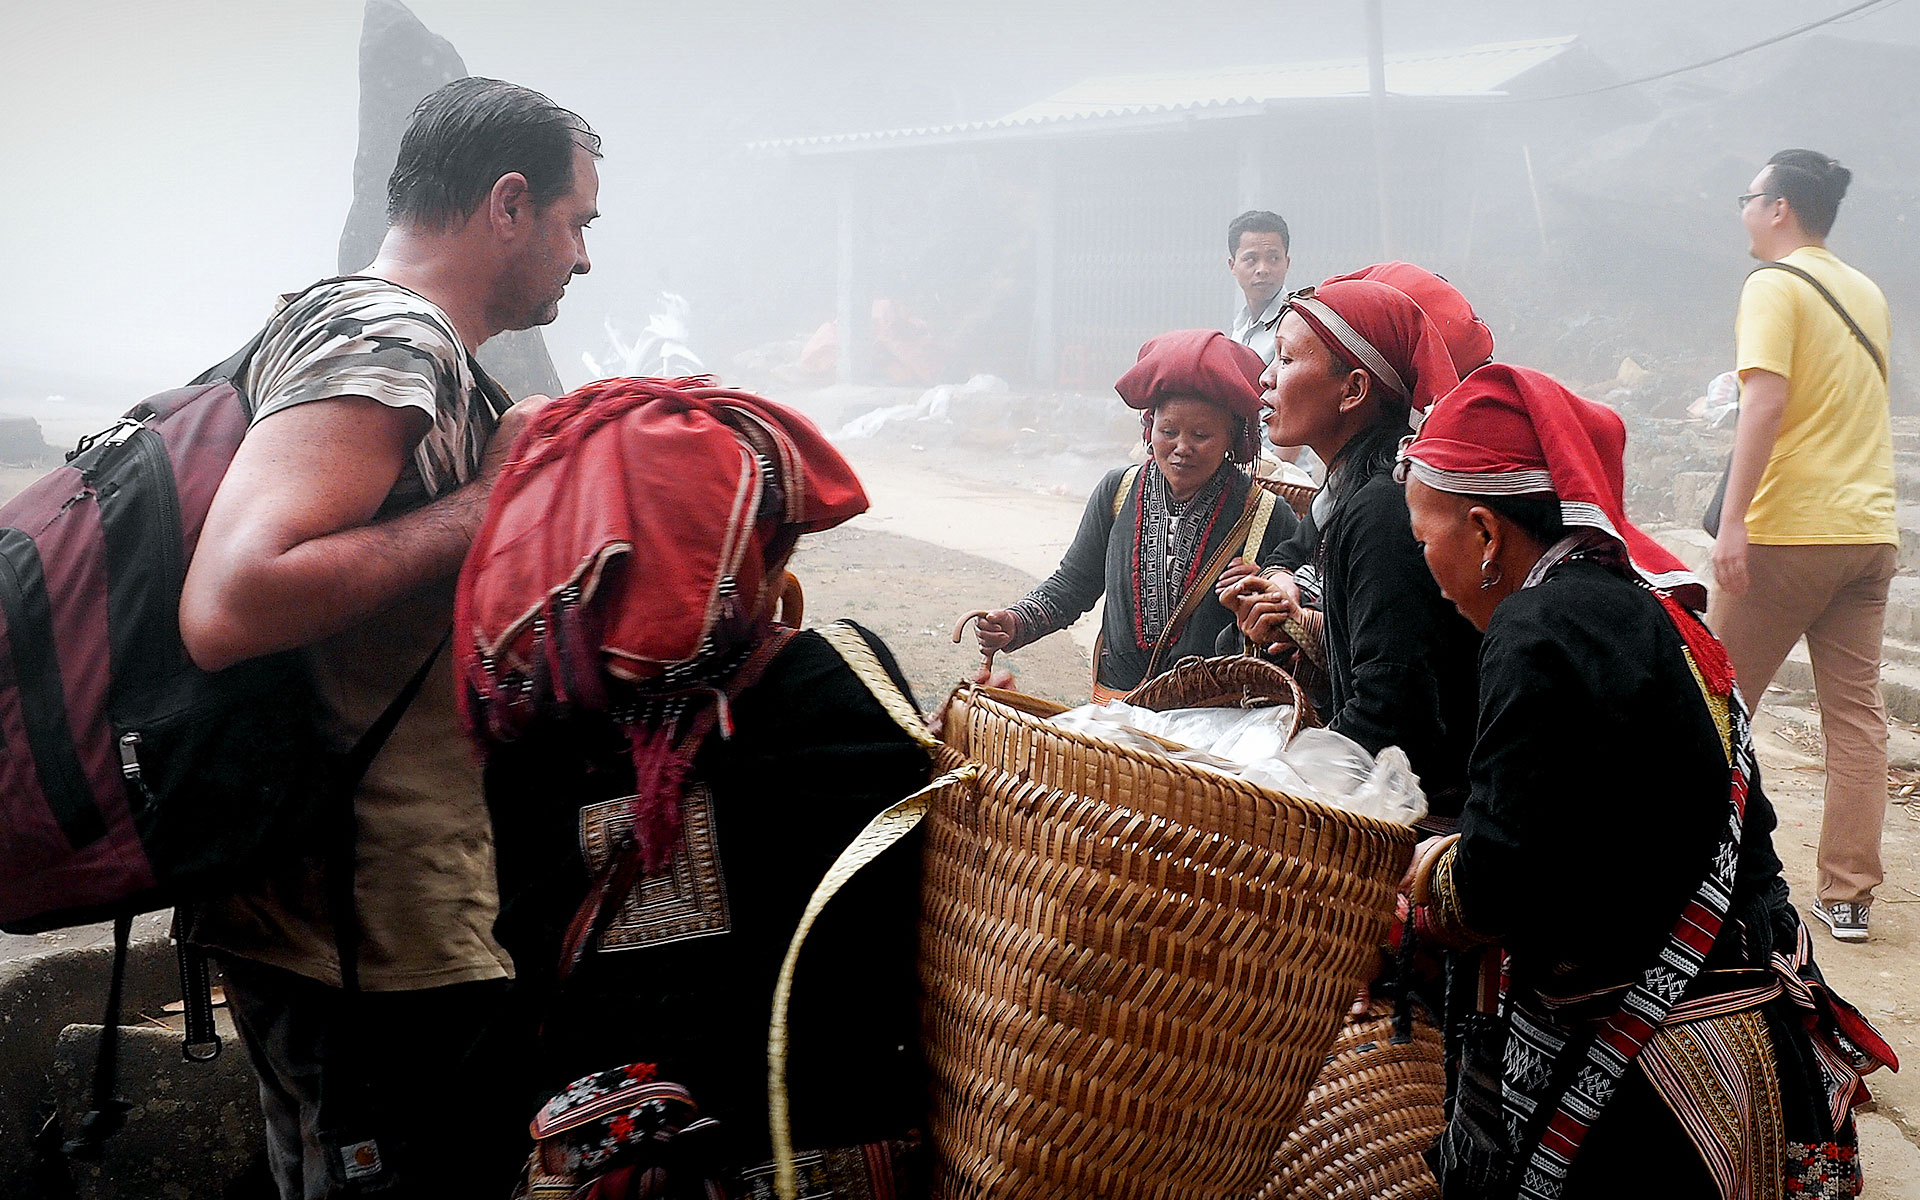 Trekking is a great way to interarct with local ethnic people and discover their ways of life